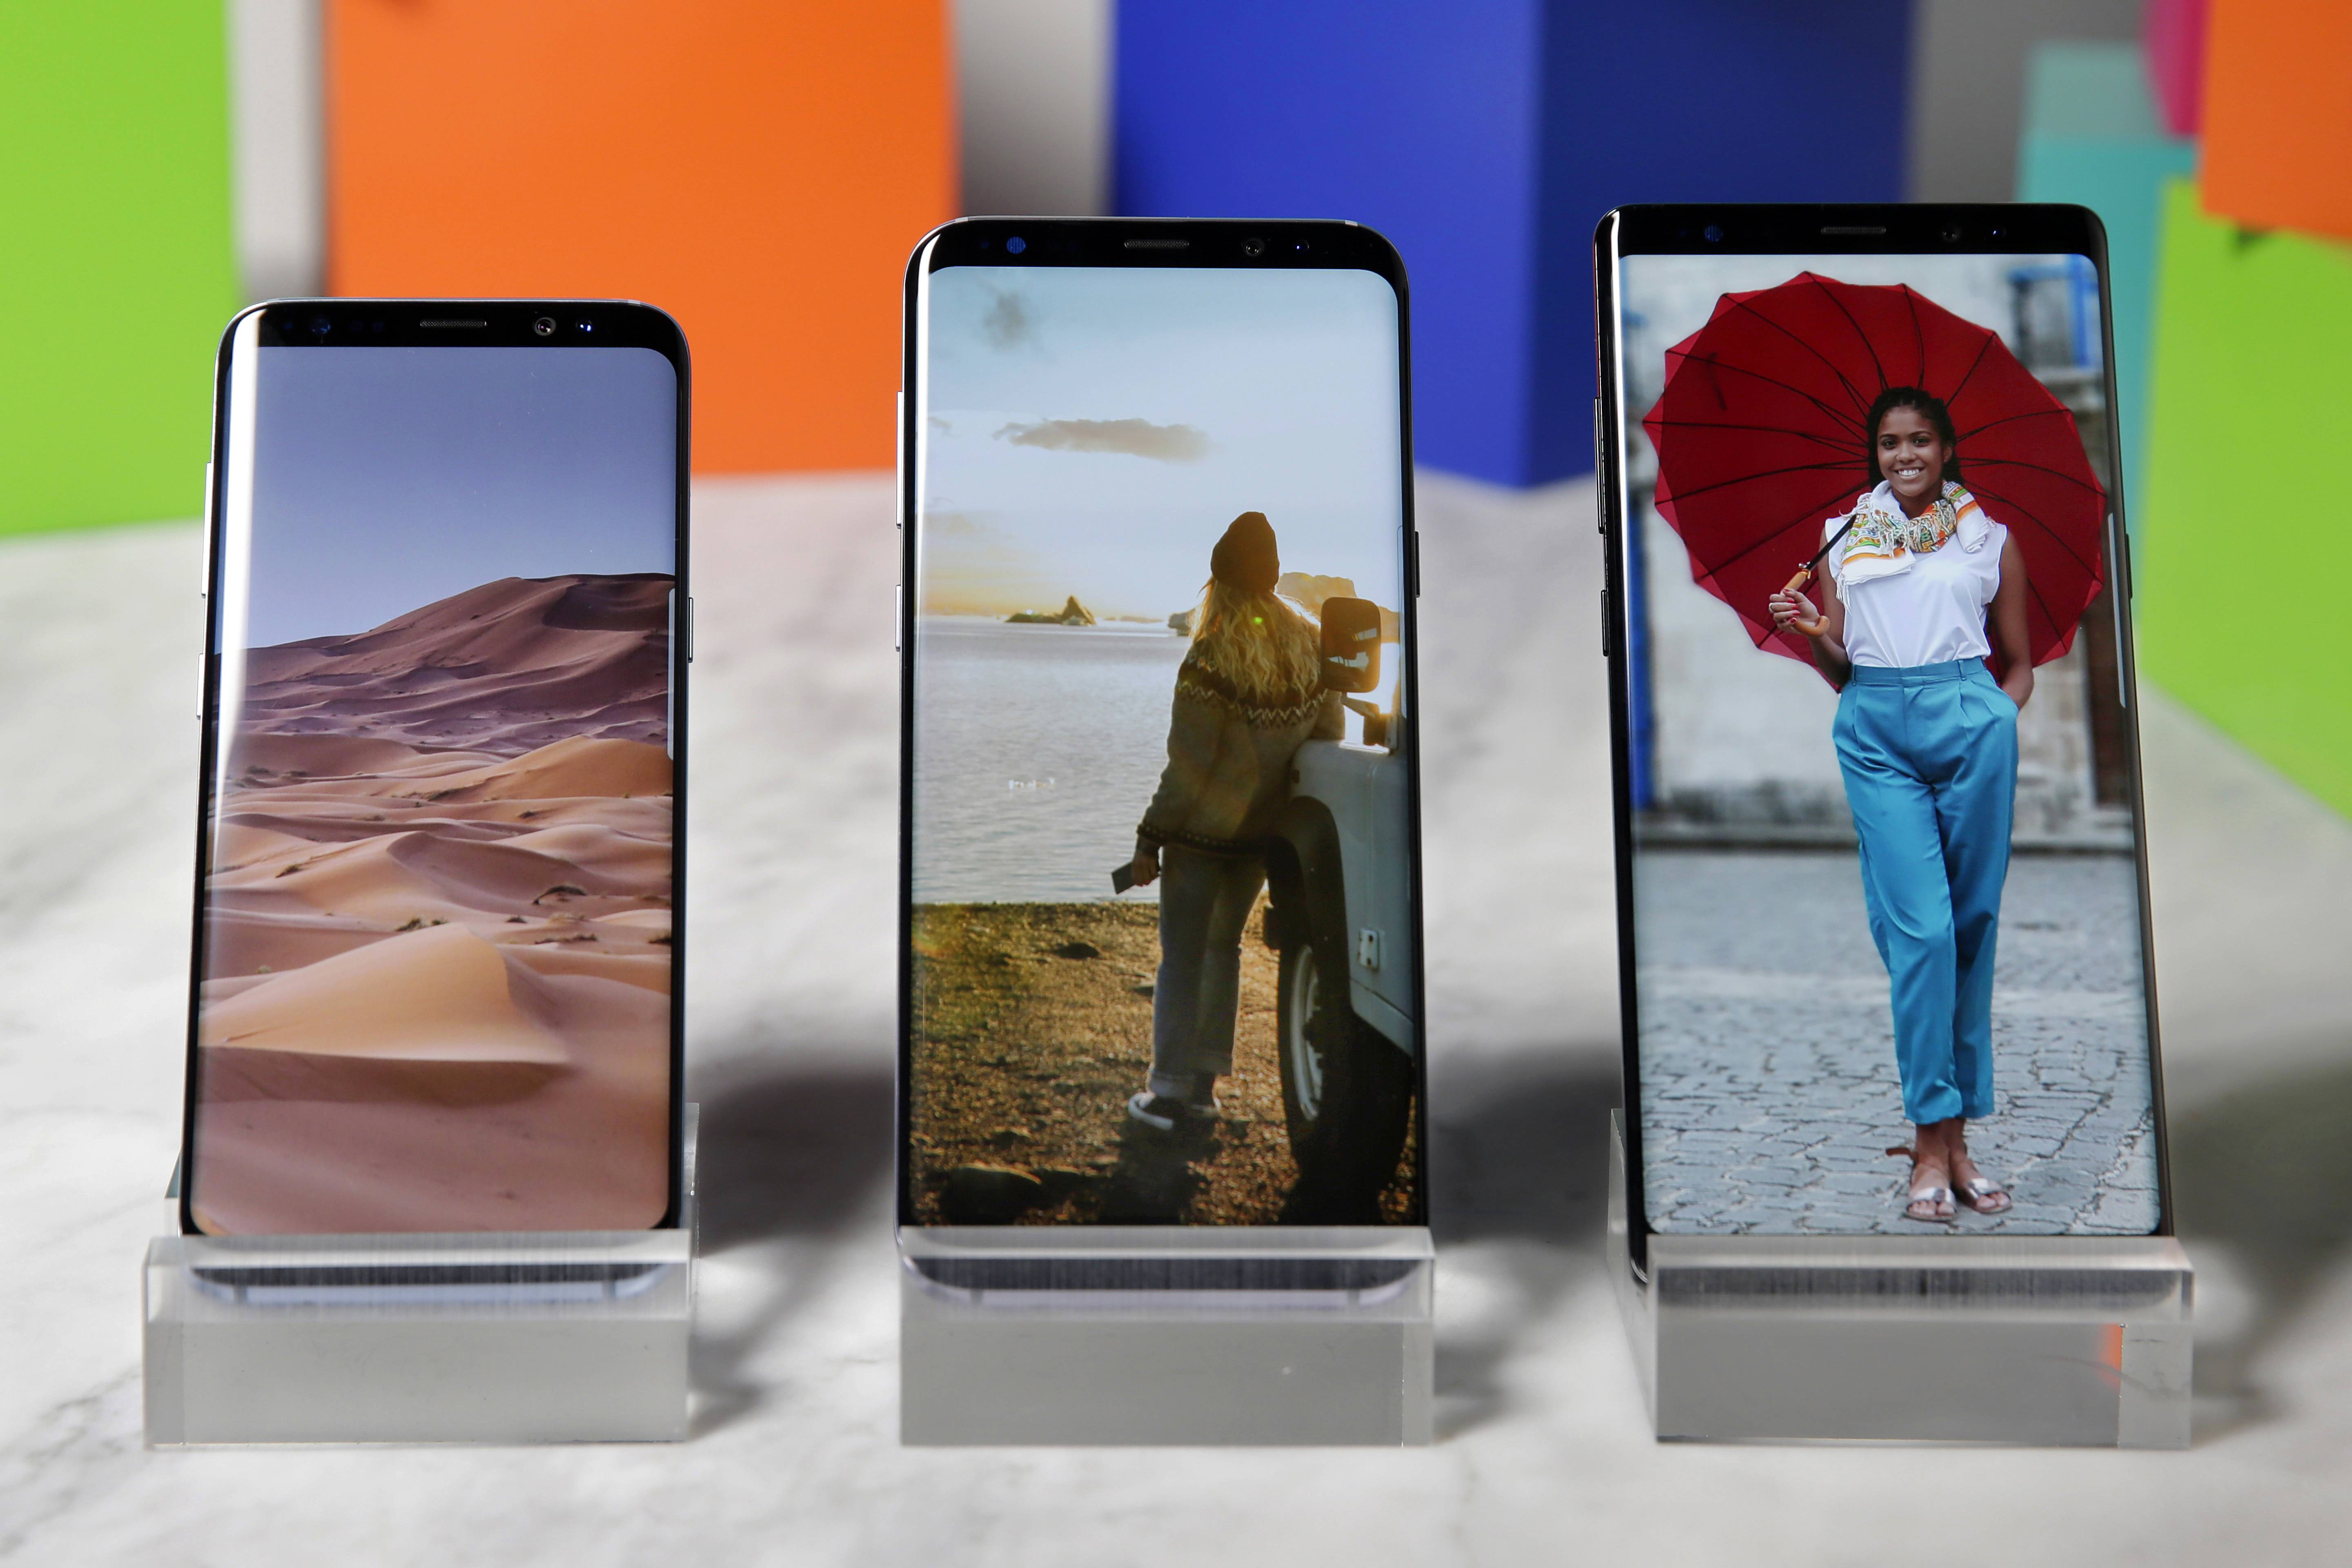 The Samsung Galaxy S8, left, a Samsung Galaxy S8 Plus, center, and Samsung Galaxy Note 8, right. The Note 8, Samsung's latest premium smartphone, starts at $940.